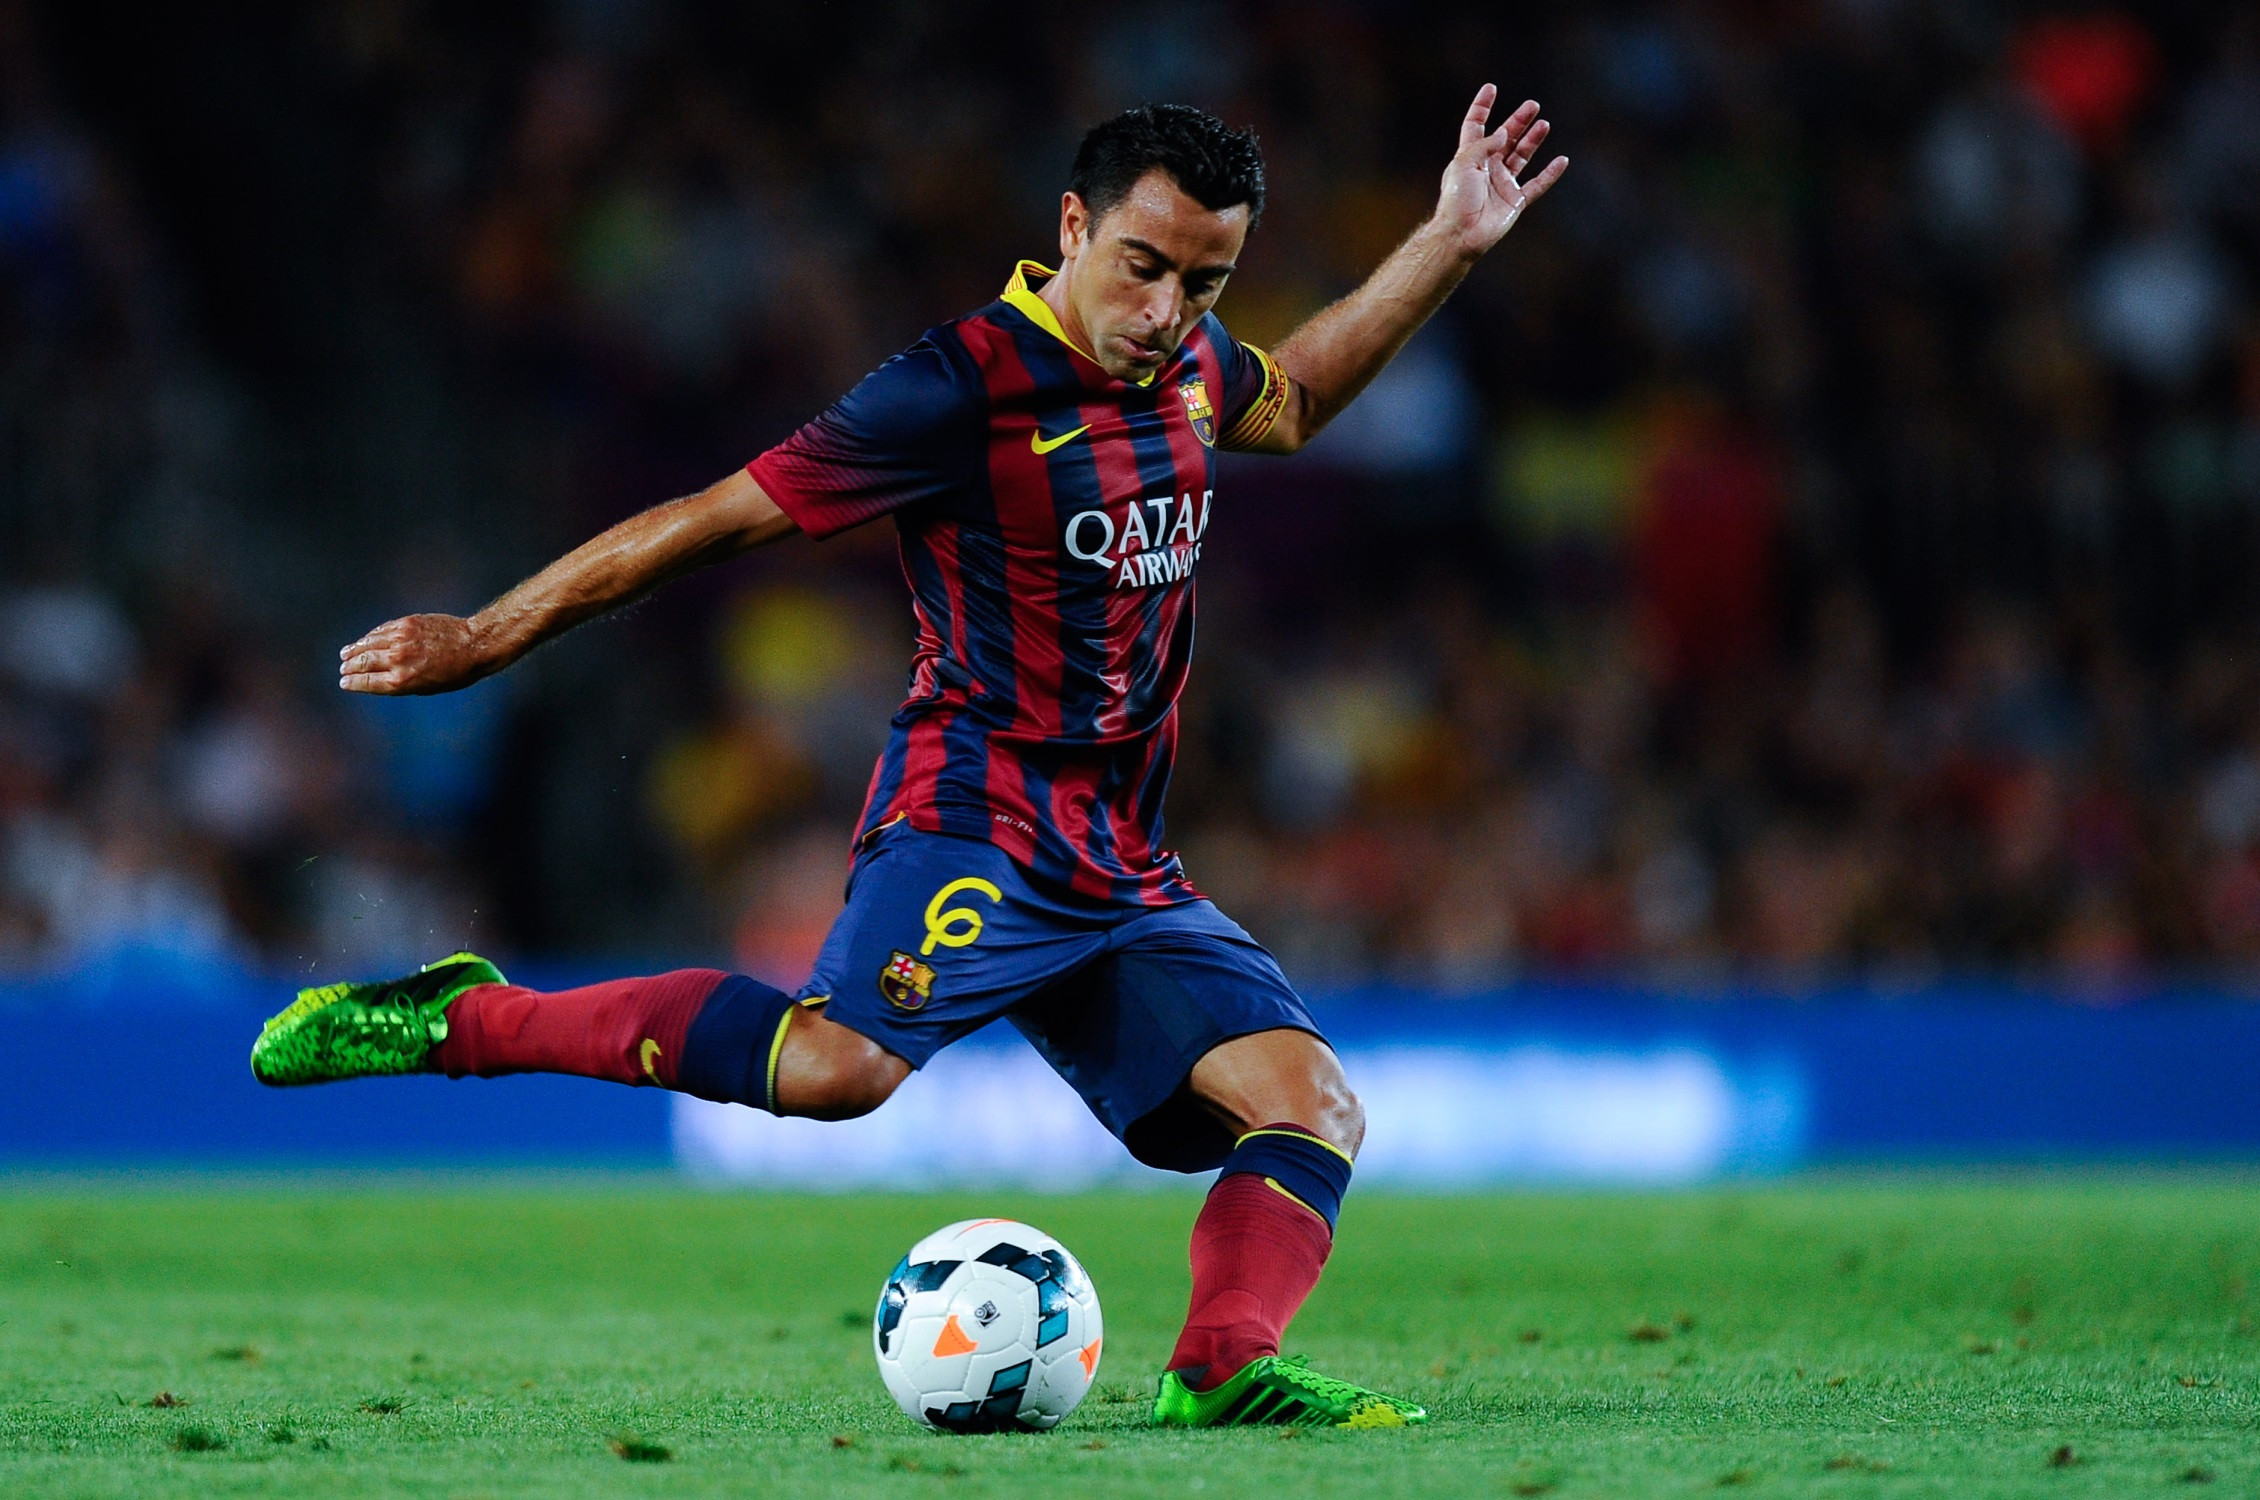 Fc barcelona blaugrana legend xavi keen to leave the club for Oficina qatar barcelona